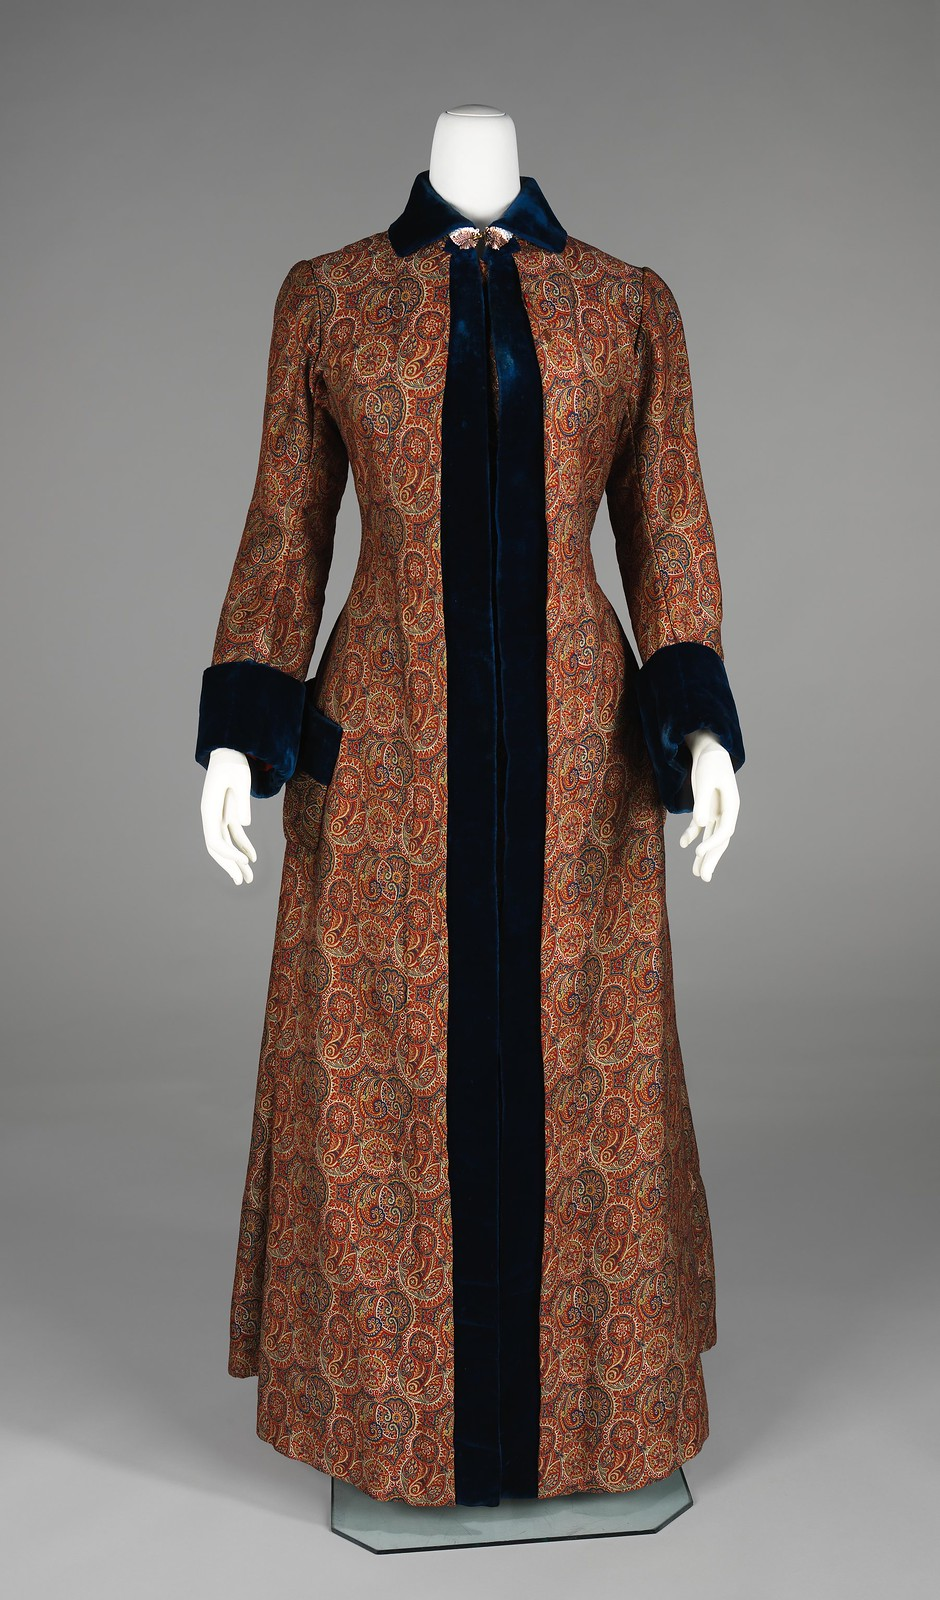 10 Exquisite Victorian Dressing Gowns — Slipping Into Something More ...